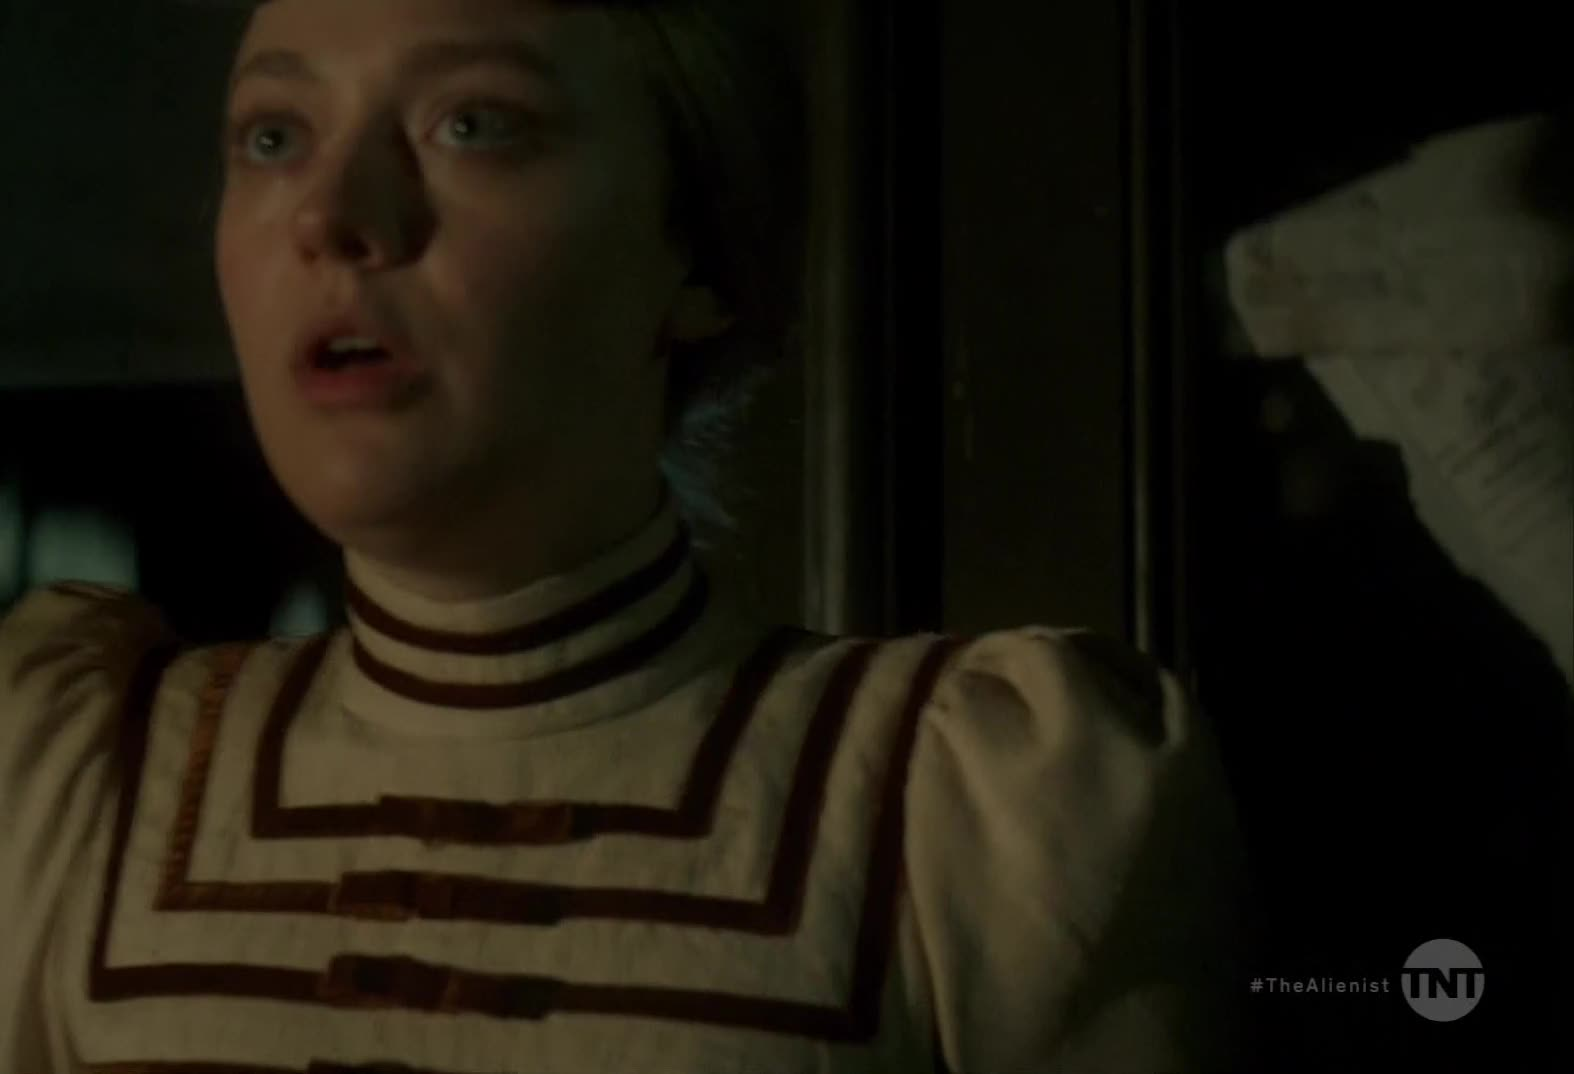 dakota fanning, Dakota. GIFs